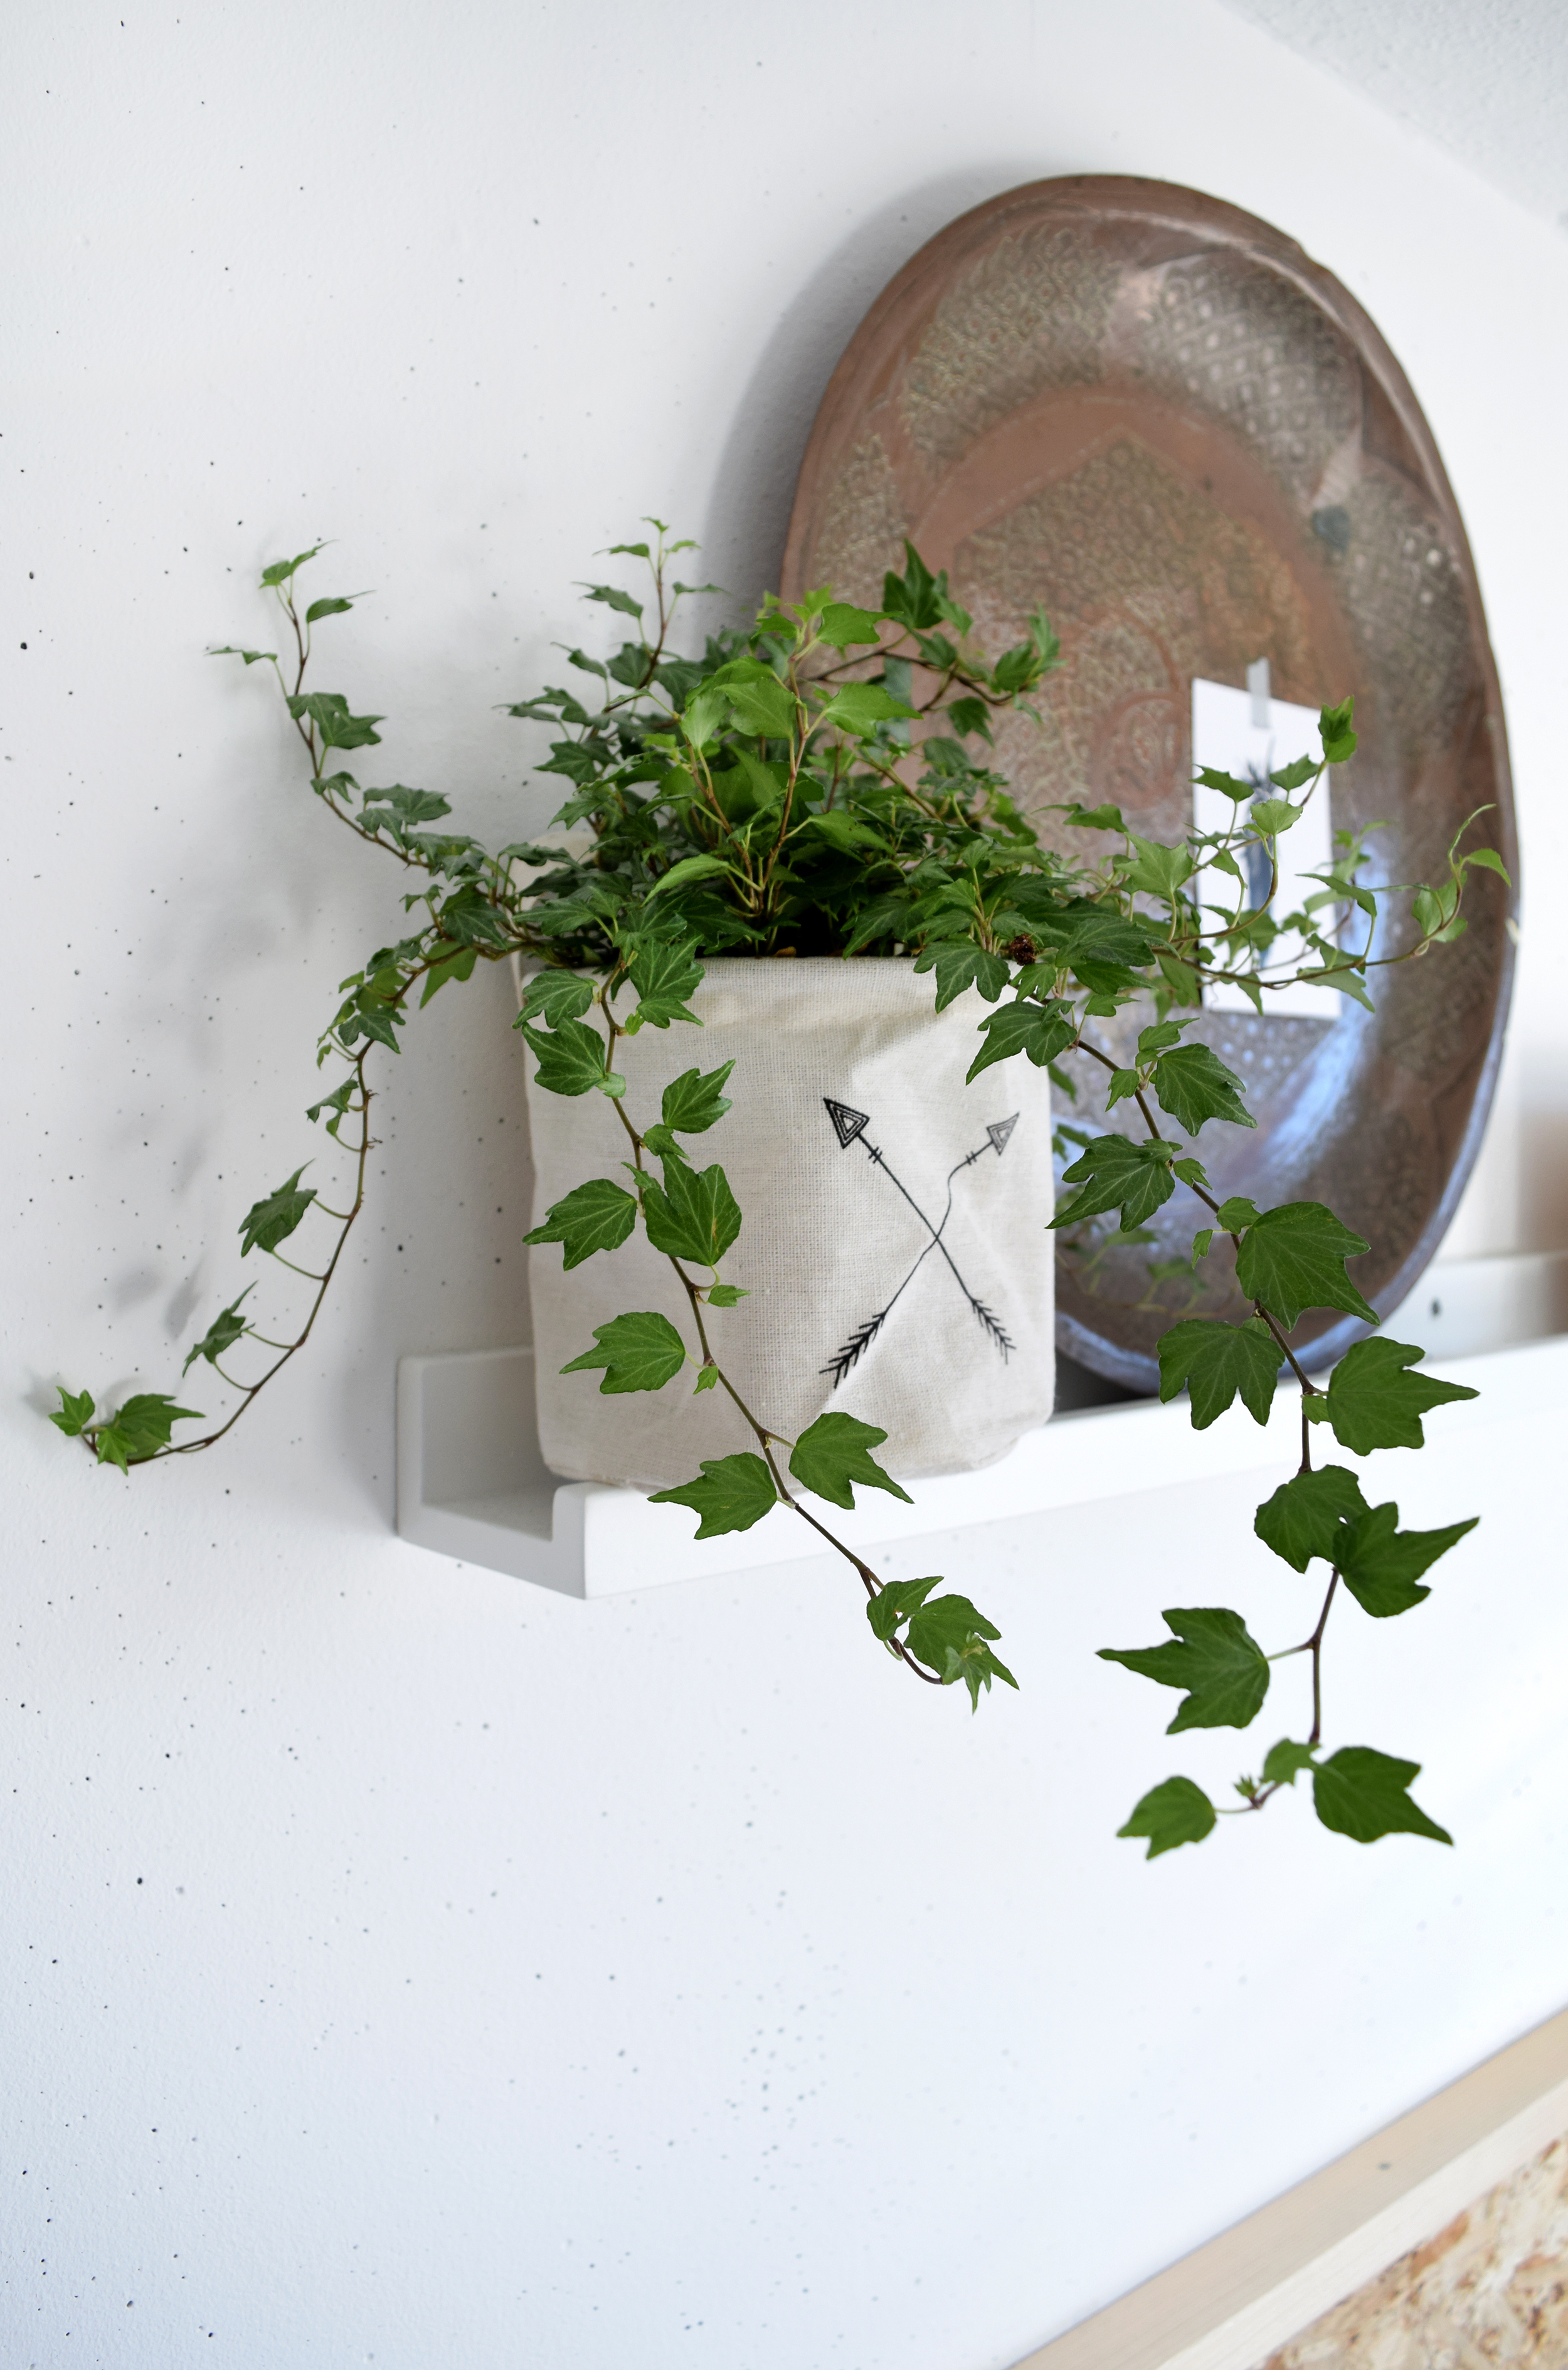 Image by Mirjam Hart of her own home